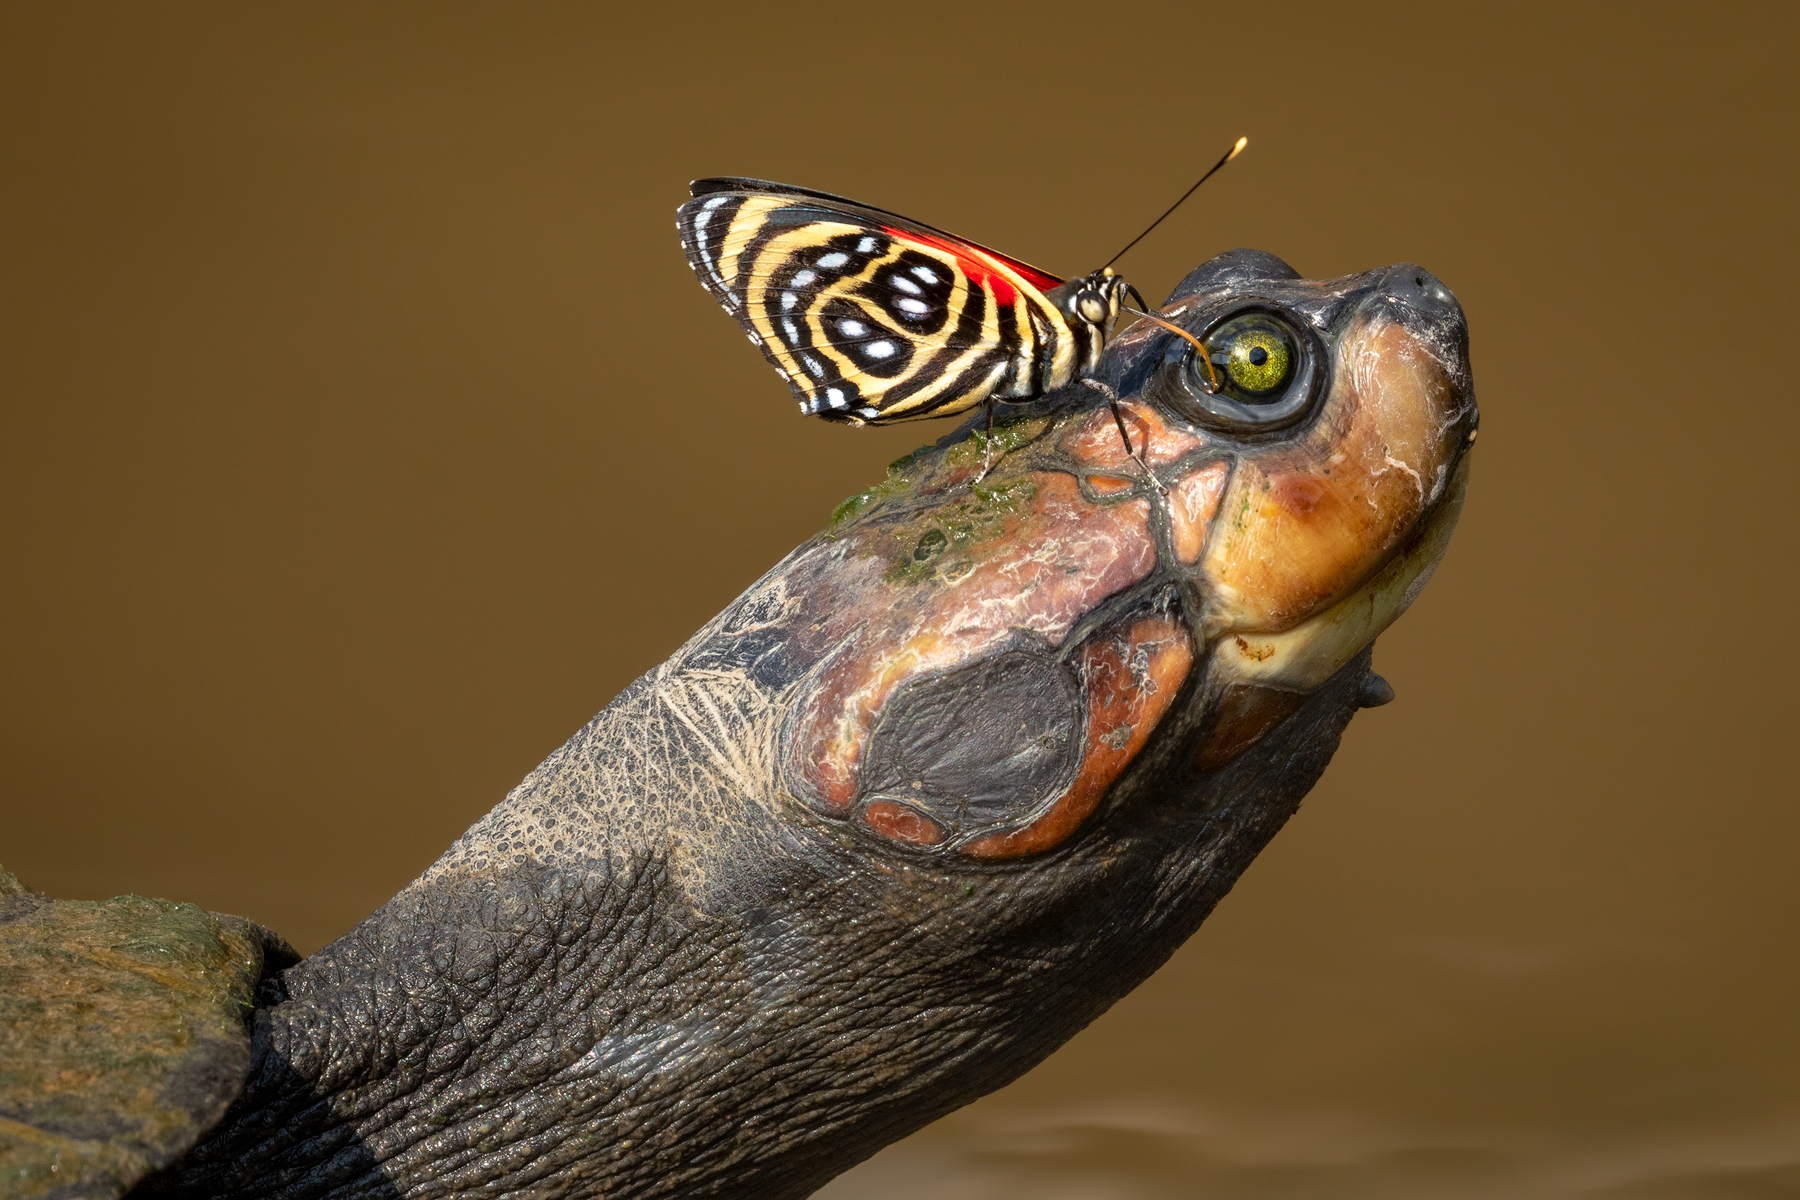 Turtle & Butterfly, Amazon Rainforest, Ecuador